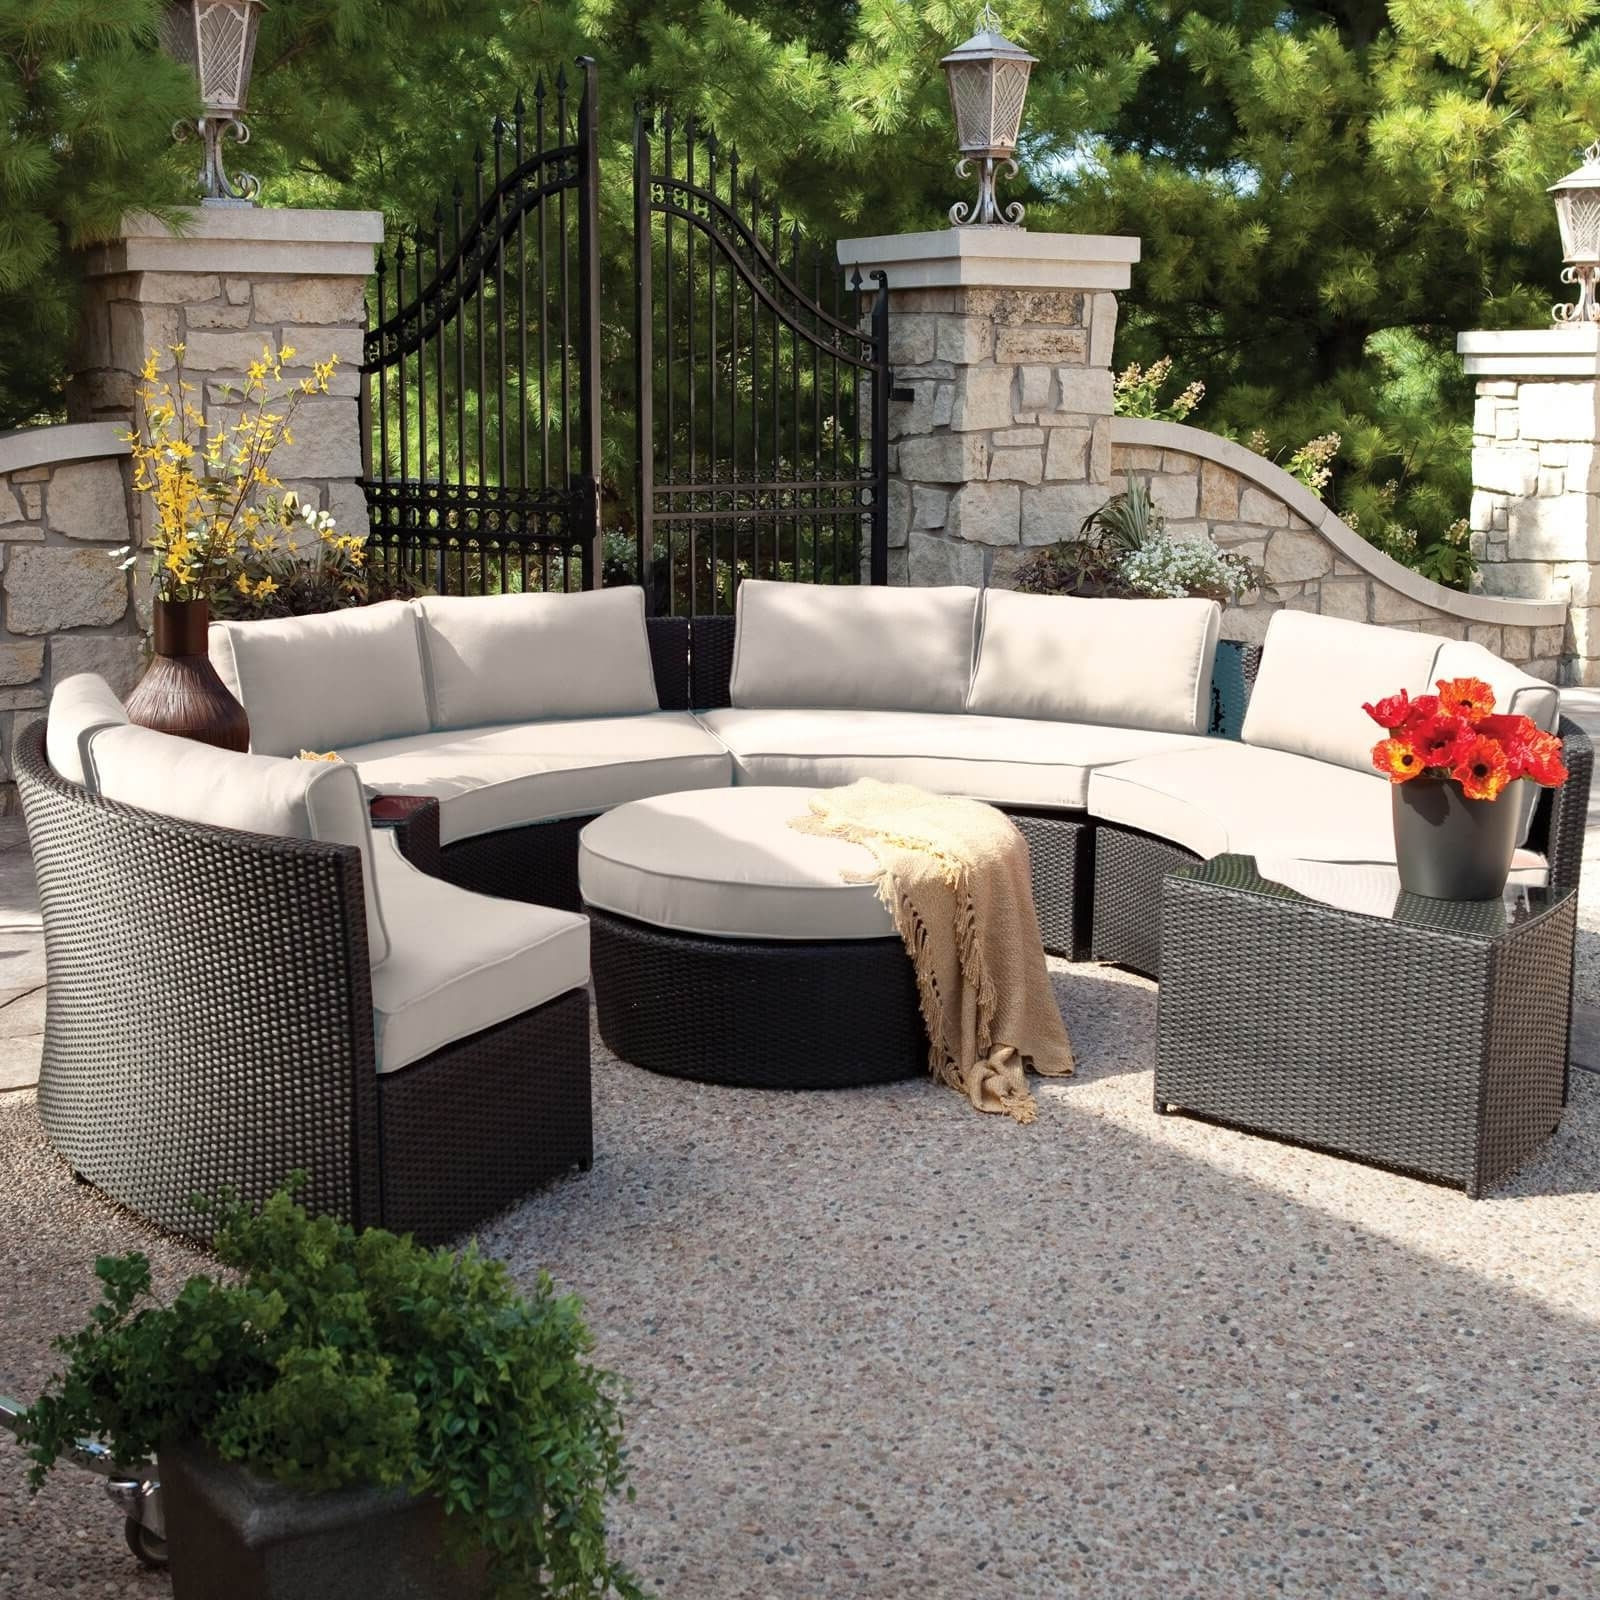 Famous 25 Awesome Modern Brown All Weather Outdoor Patio Sectionals With Patio Conversation Sets With Ottomans (View 6 of 20)